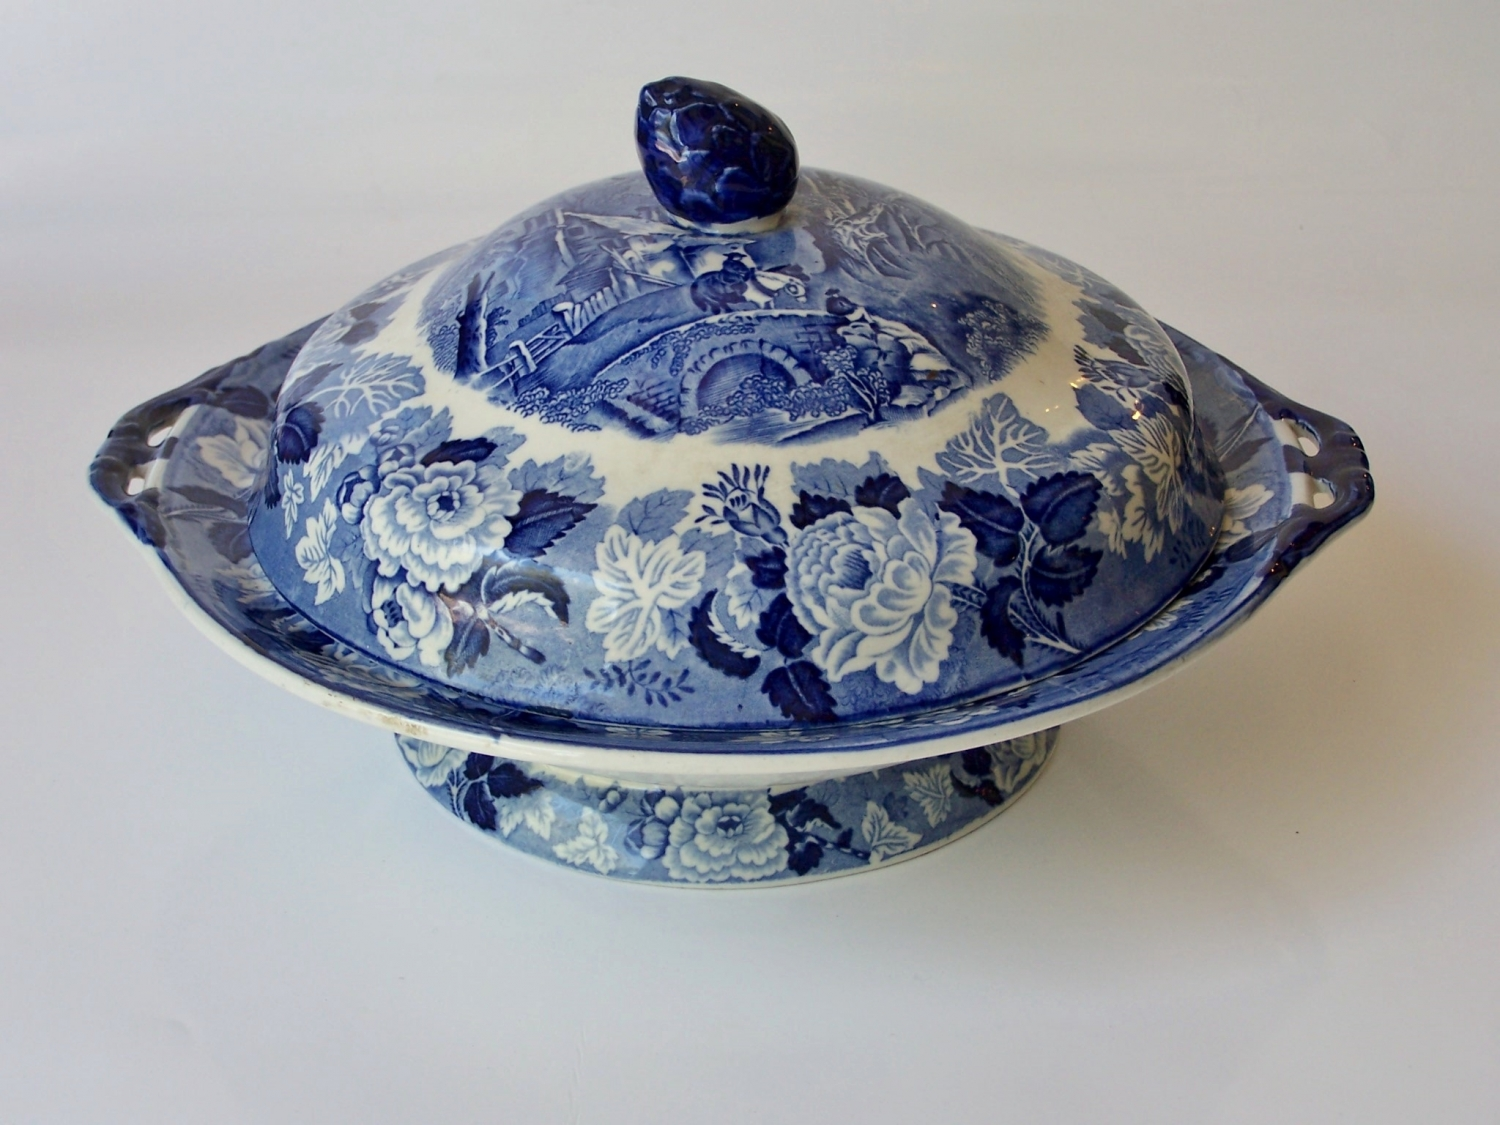 Blue and white antique serving dish